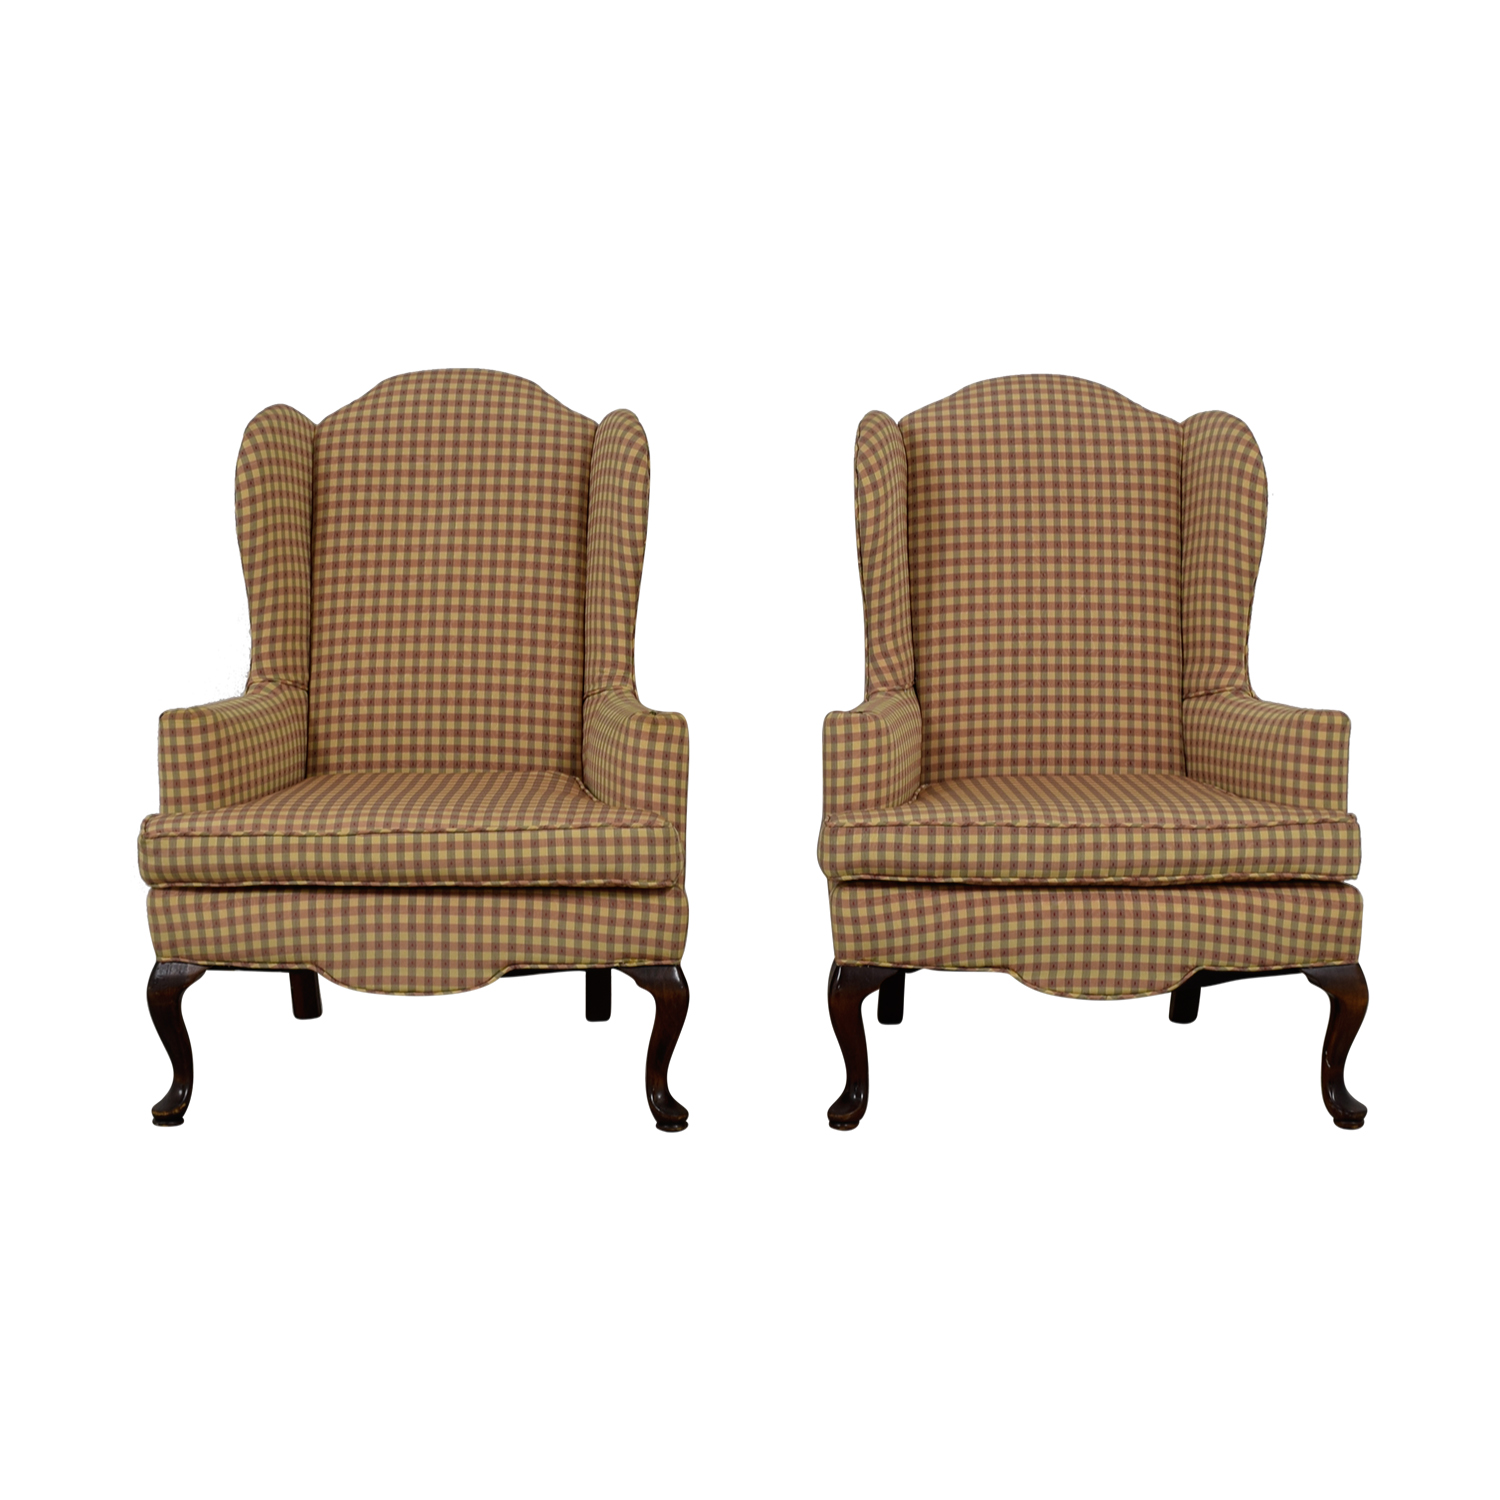 ethan allen queen anne dining chairs fisher price high chair ocean wonders tyres2c